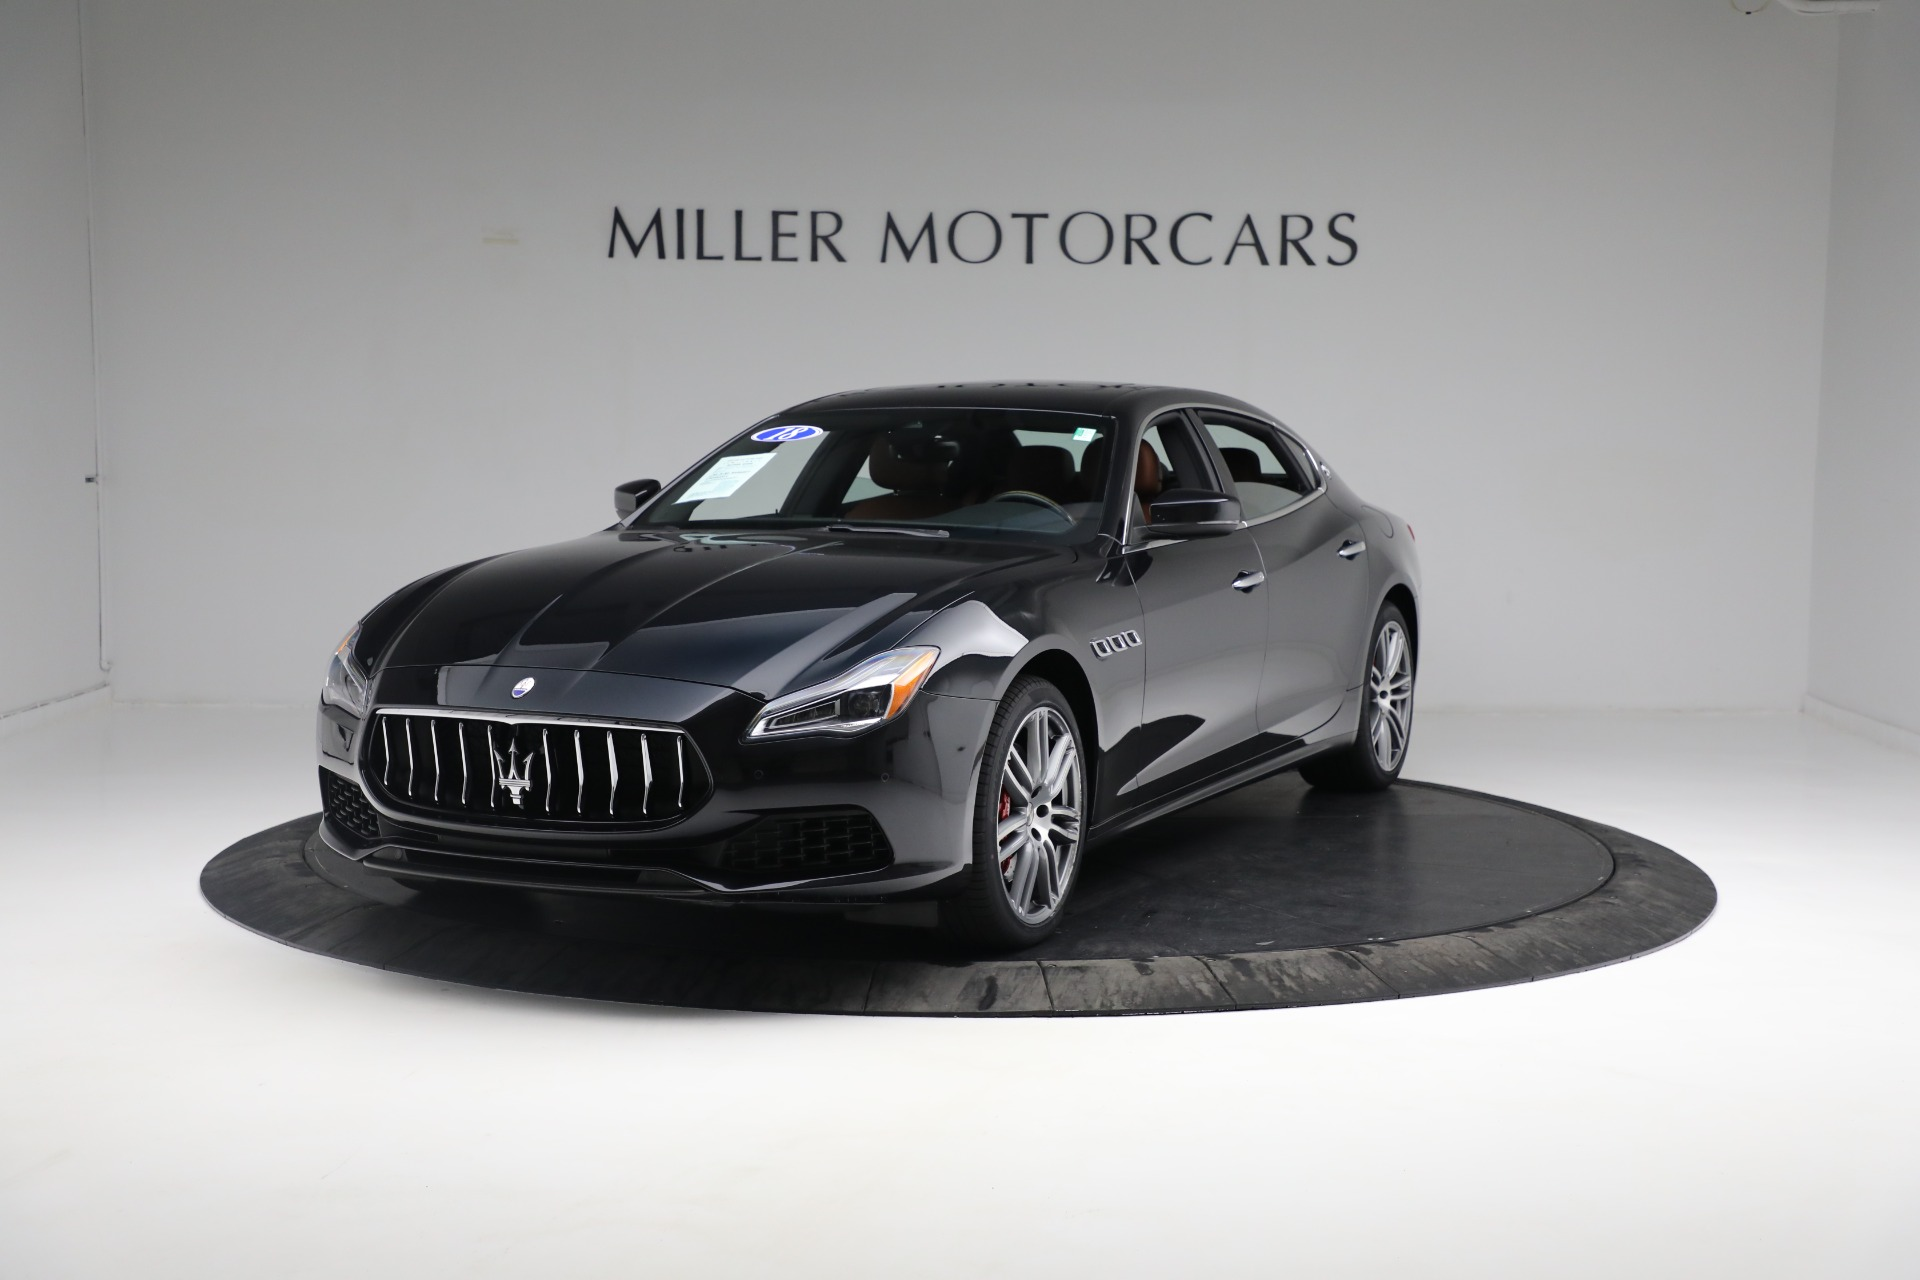 New 2018 Maserati Quattroporte S Q4 for sale Sold at Bentley Greenwich in Greenwich CT 06830 1